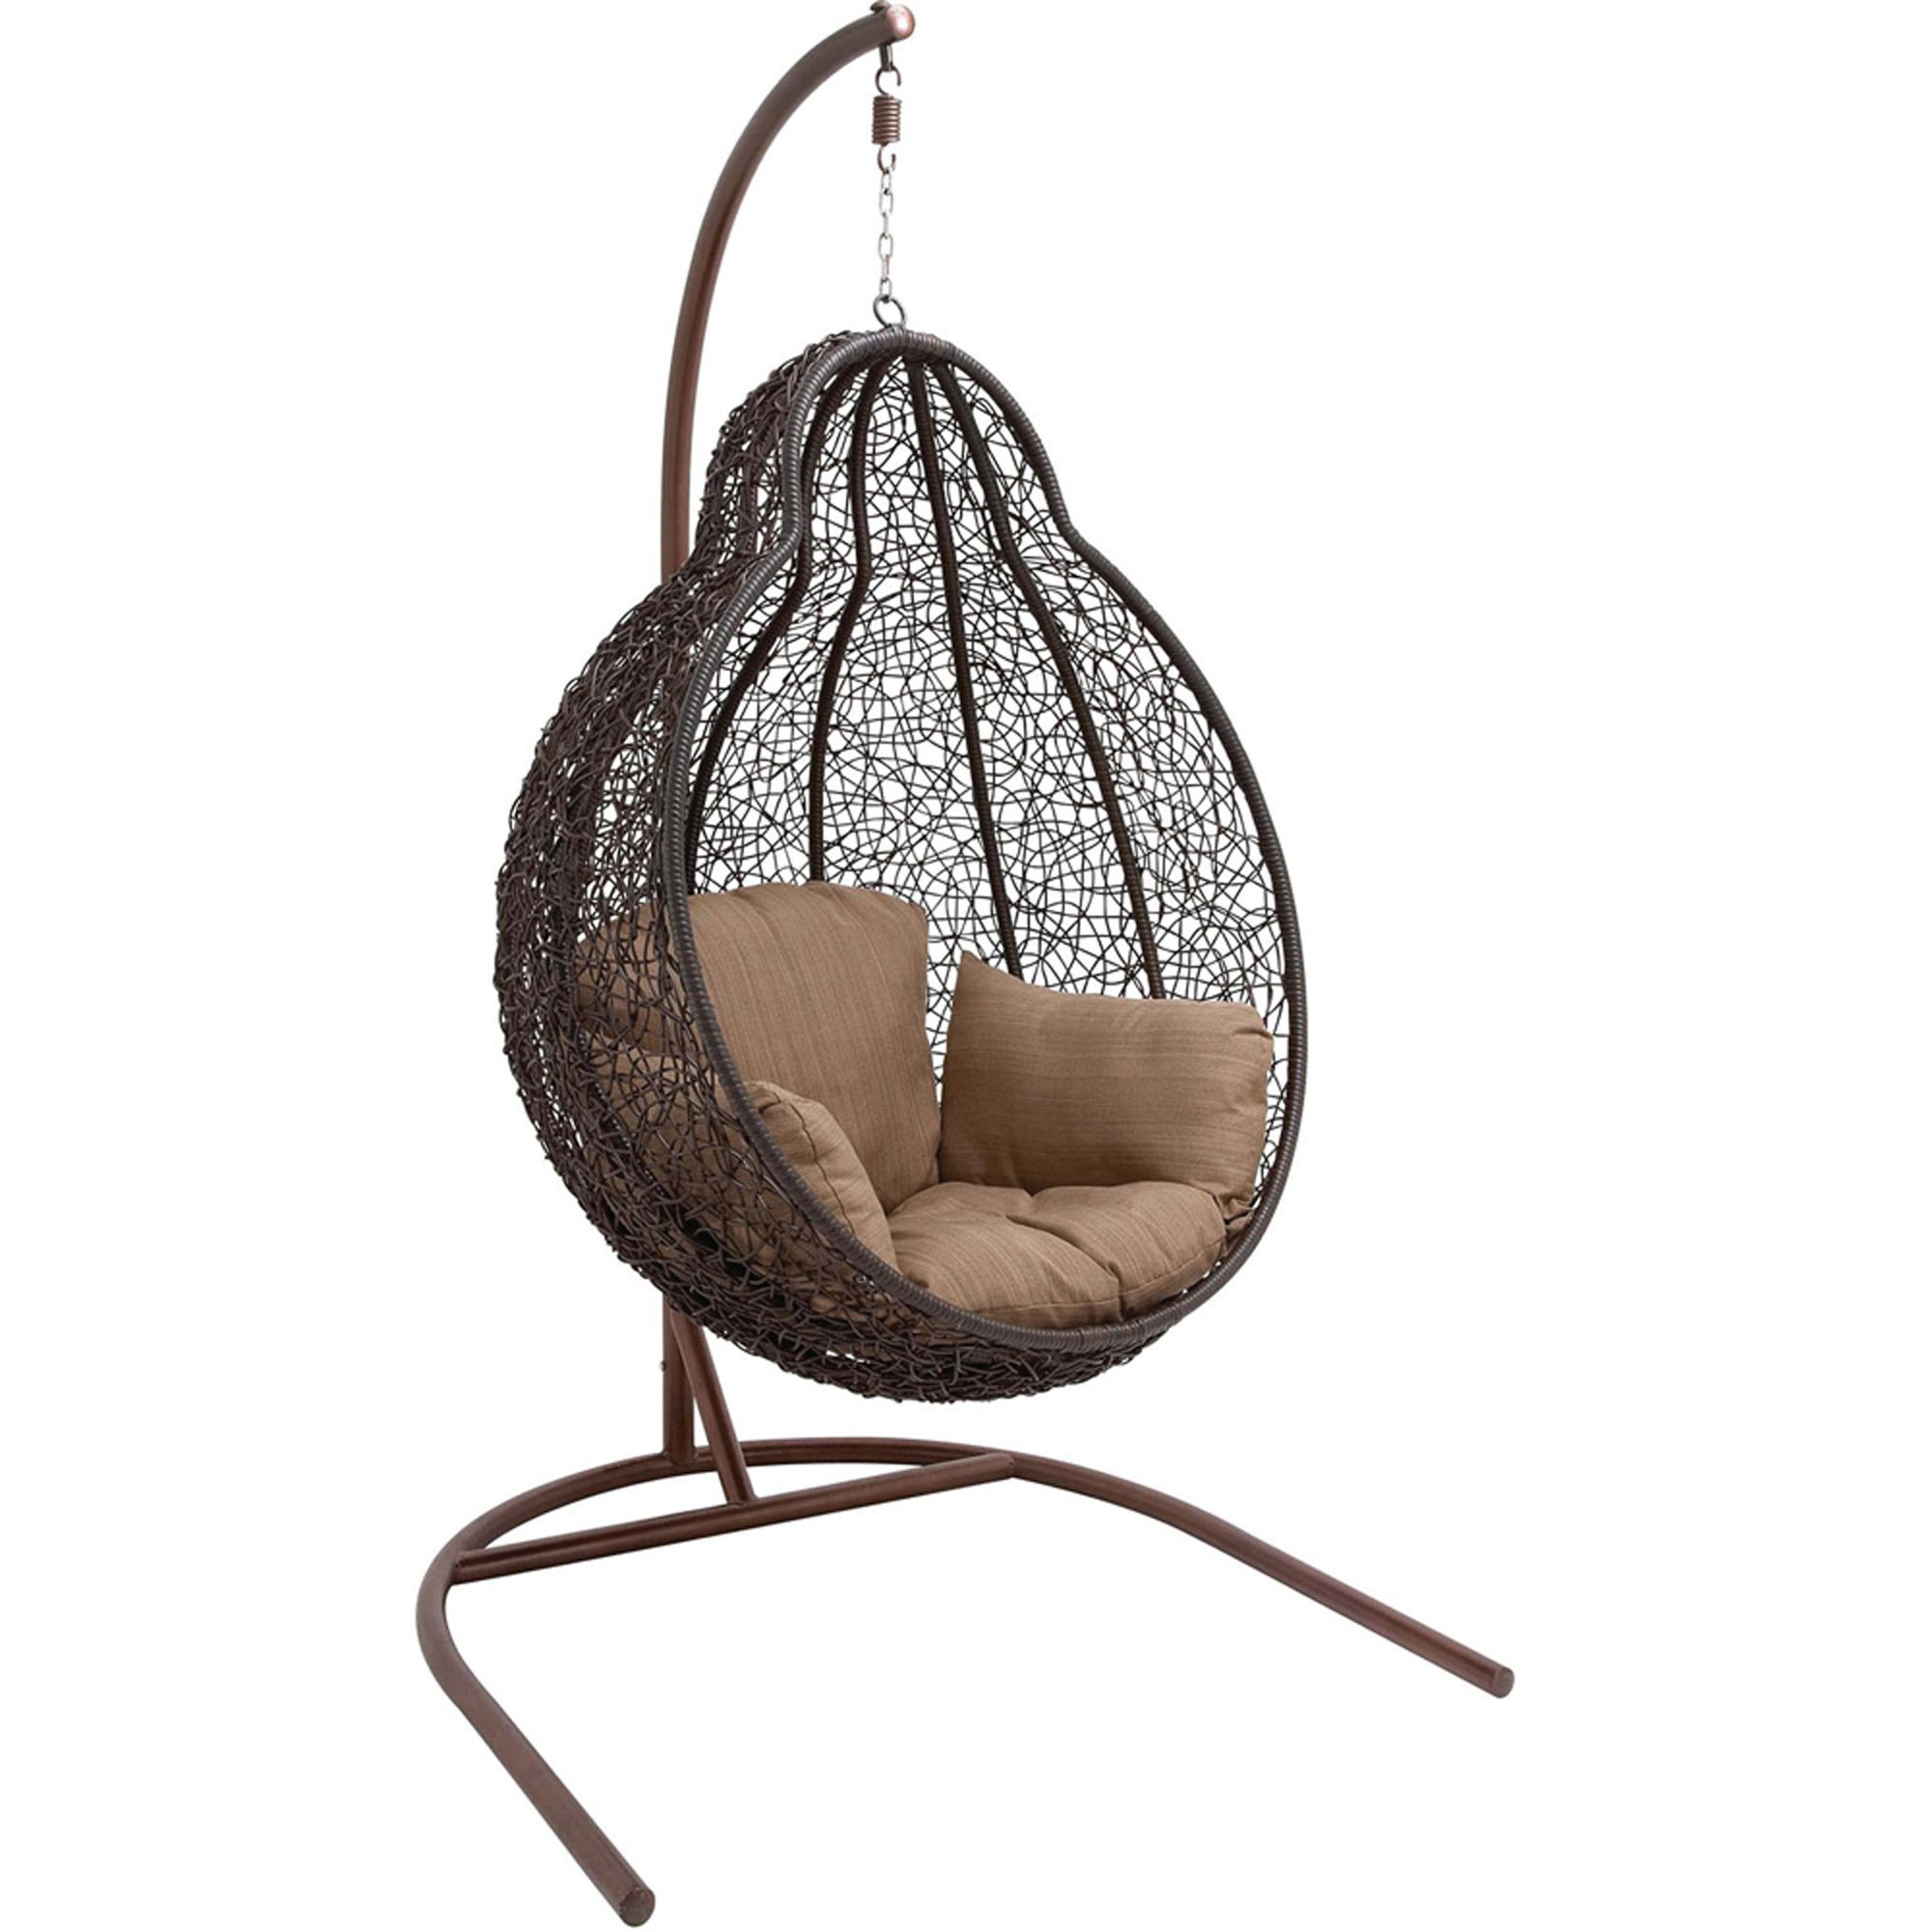 Inspirational Outdoor Swing Chair With Stand About Remodel